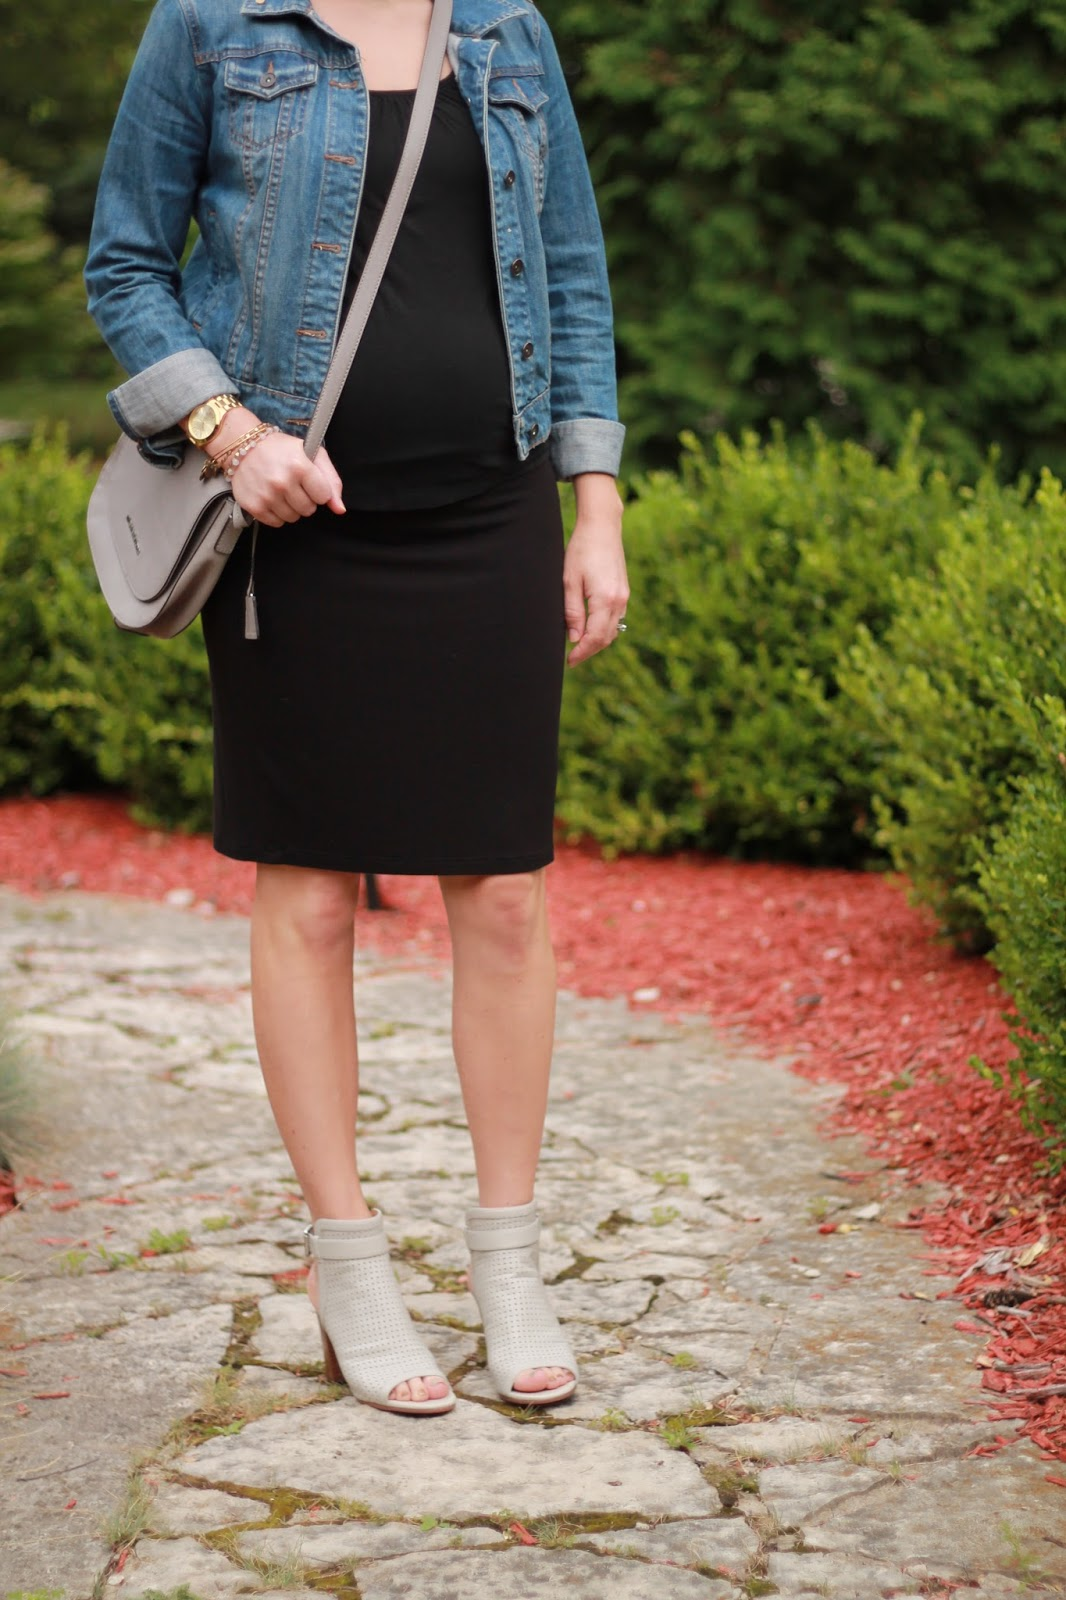 black tee, black pencil skirt, Sam Edelman peep toe booties, grey crossbody bag, denim jacket, second trimester summer maternity outfit,